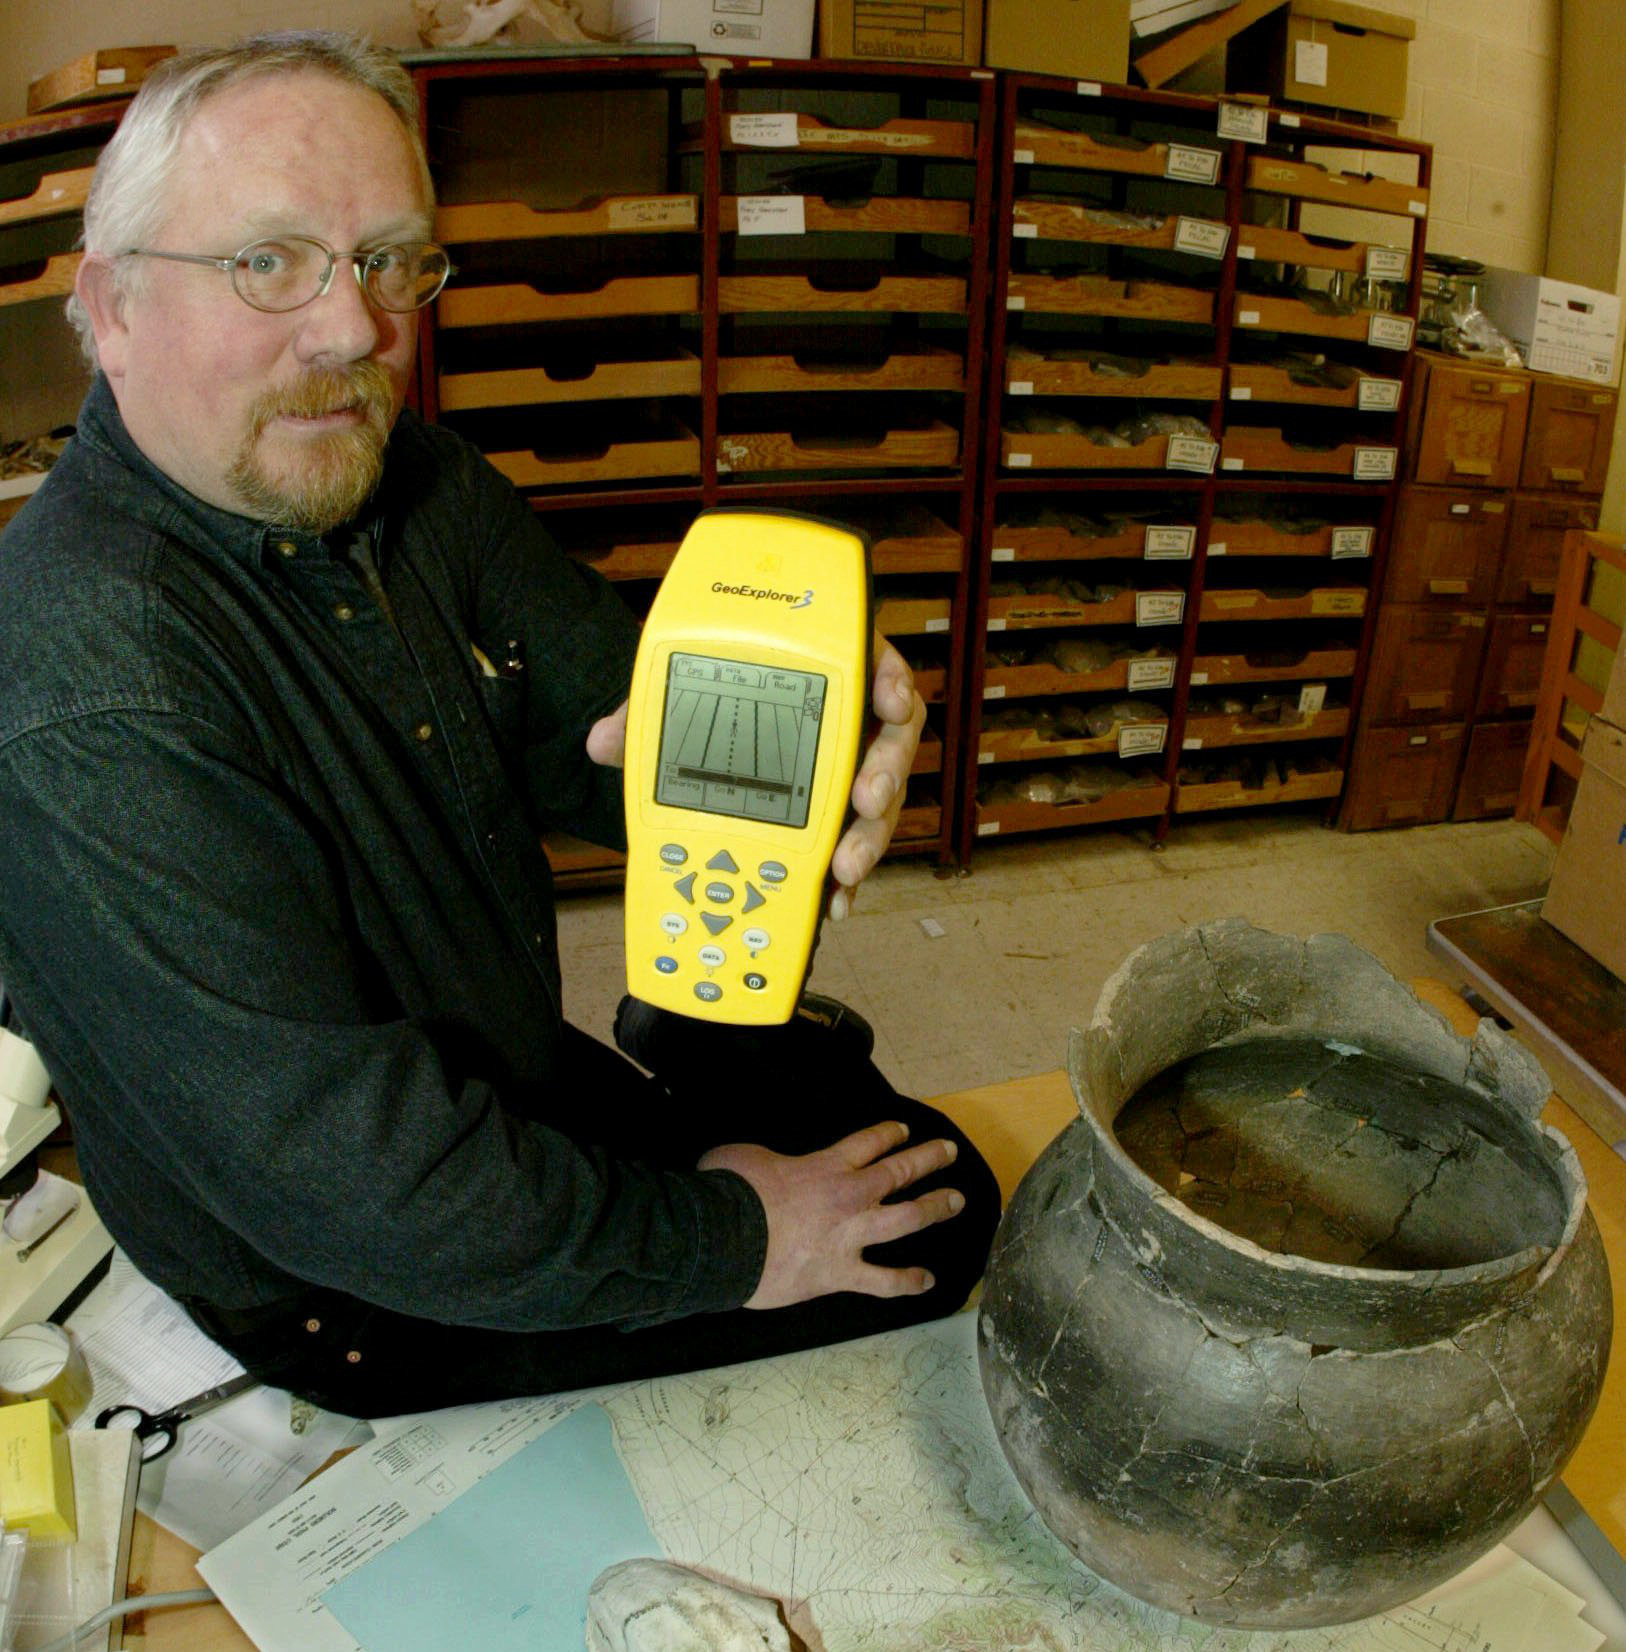 "** ADVANCE FOR WEEKEND OF APRIL 5-6 ** Kevin T. Jones Archaeologist for the State of Utah, poses with a GPS receiver while sitting next to a 1,000 year old Fremont Indian pot and other artifacts in his lab in Salt Lake City, Wednesday, April 2, 2003. There are concerns that with GPS coordinates and a map anyone can find artifacts that are normally hidden or hard to find, leaving ancient, priceless art vulnerable to what the Bureau of Land Management calls ""digital vandalism."""